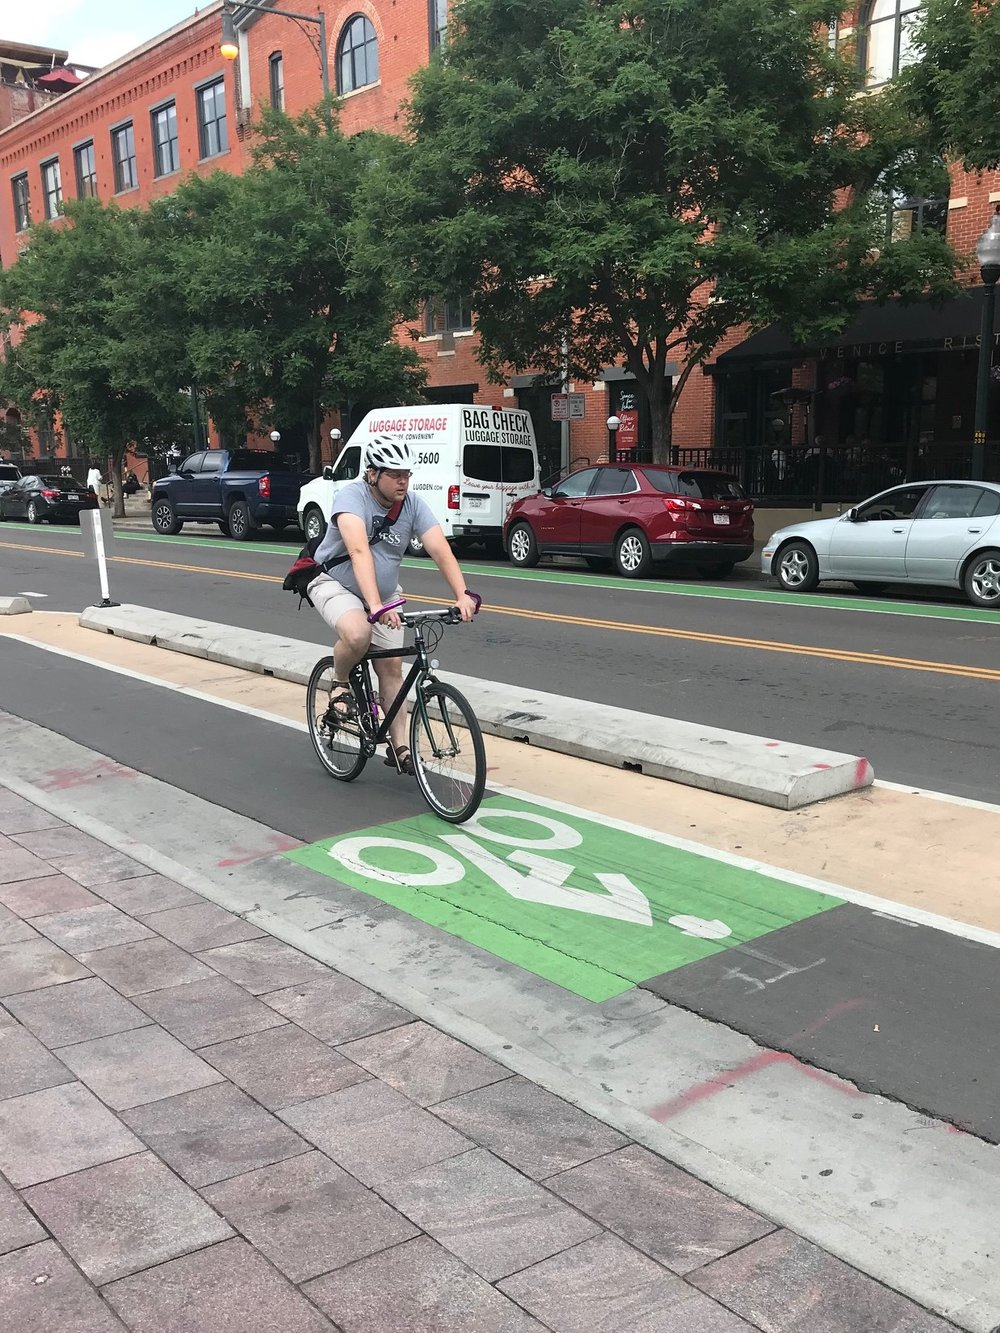 Denver has 130 miles of bike lanes